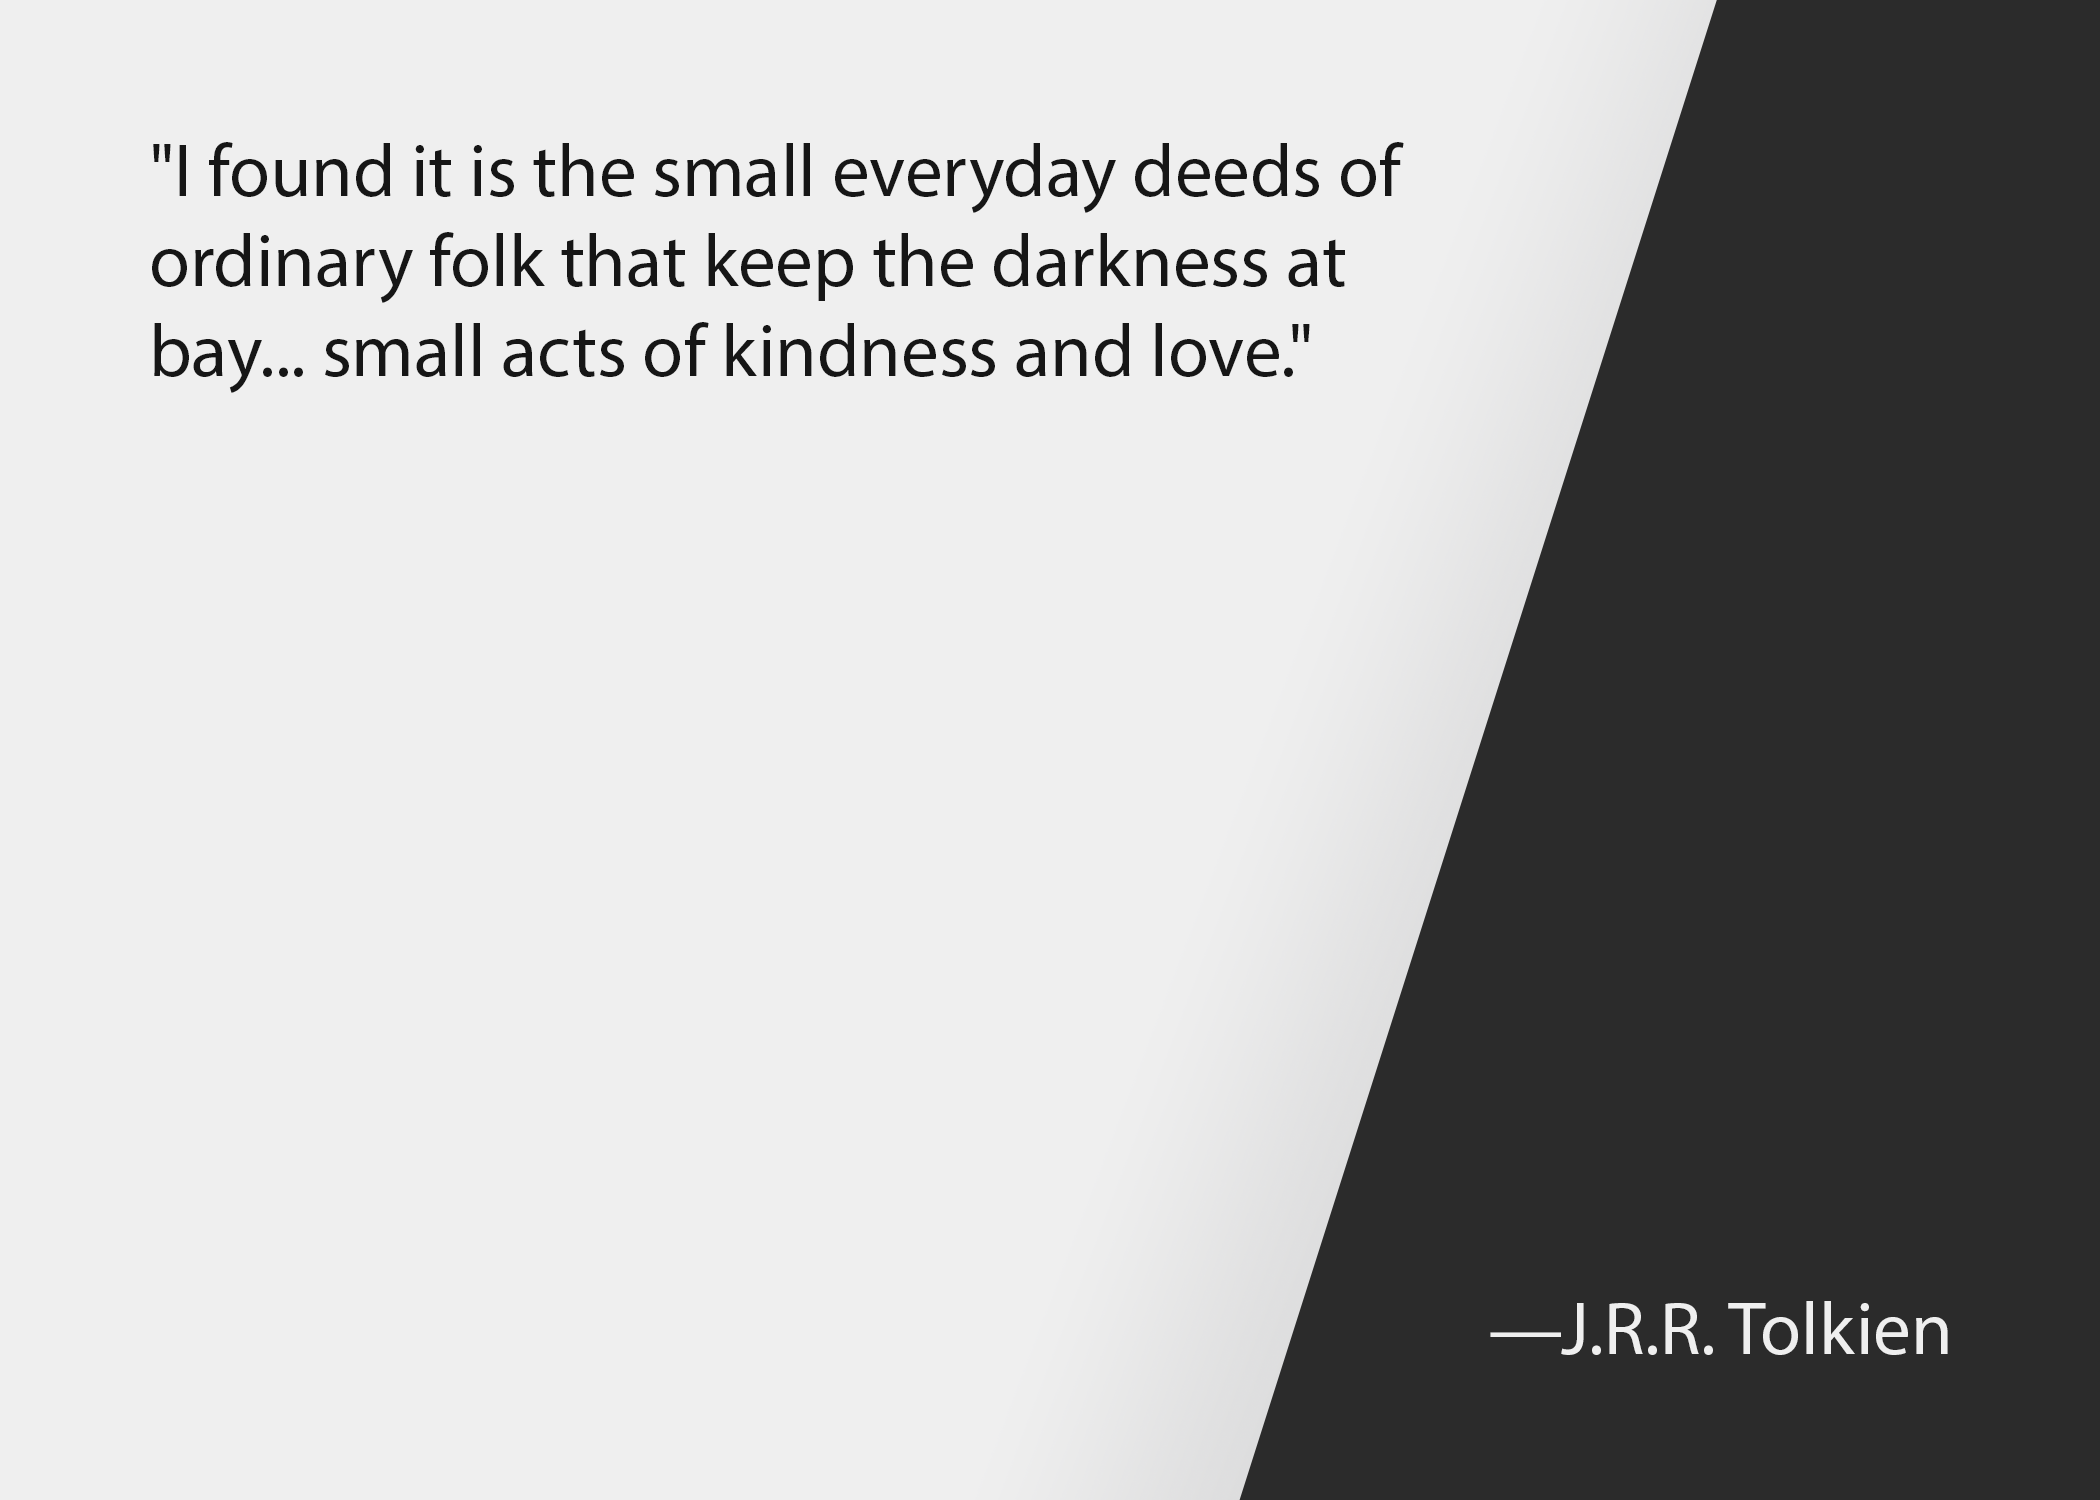 Church leadership quotes: J.R.R. Tolkien quote